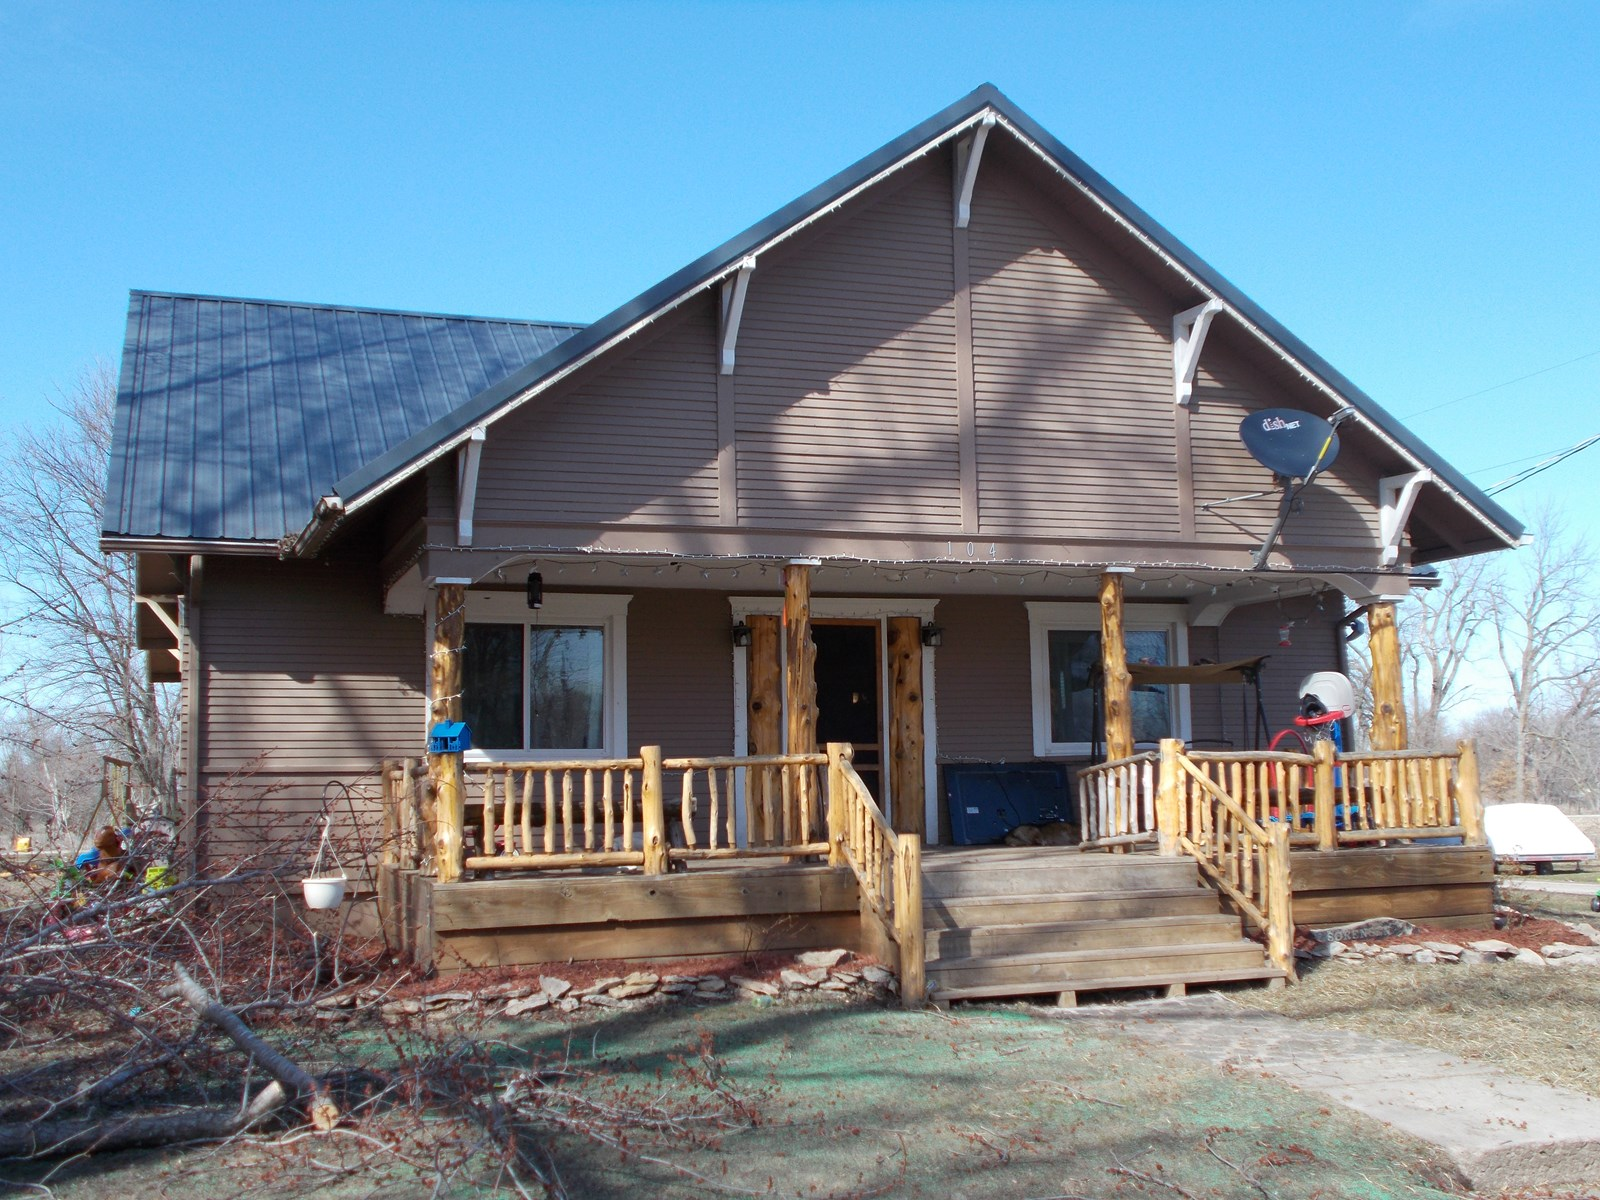 One Story Home For Sale in Small Rural Community